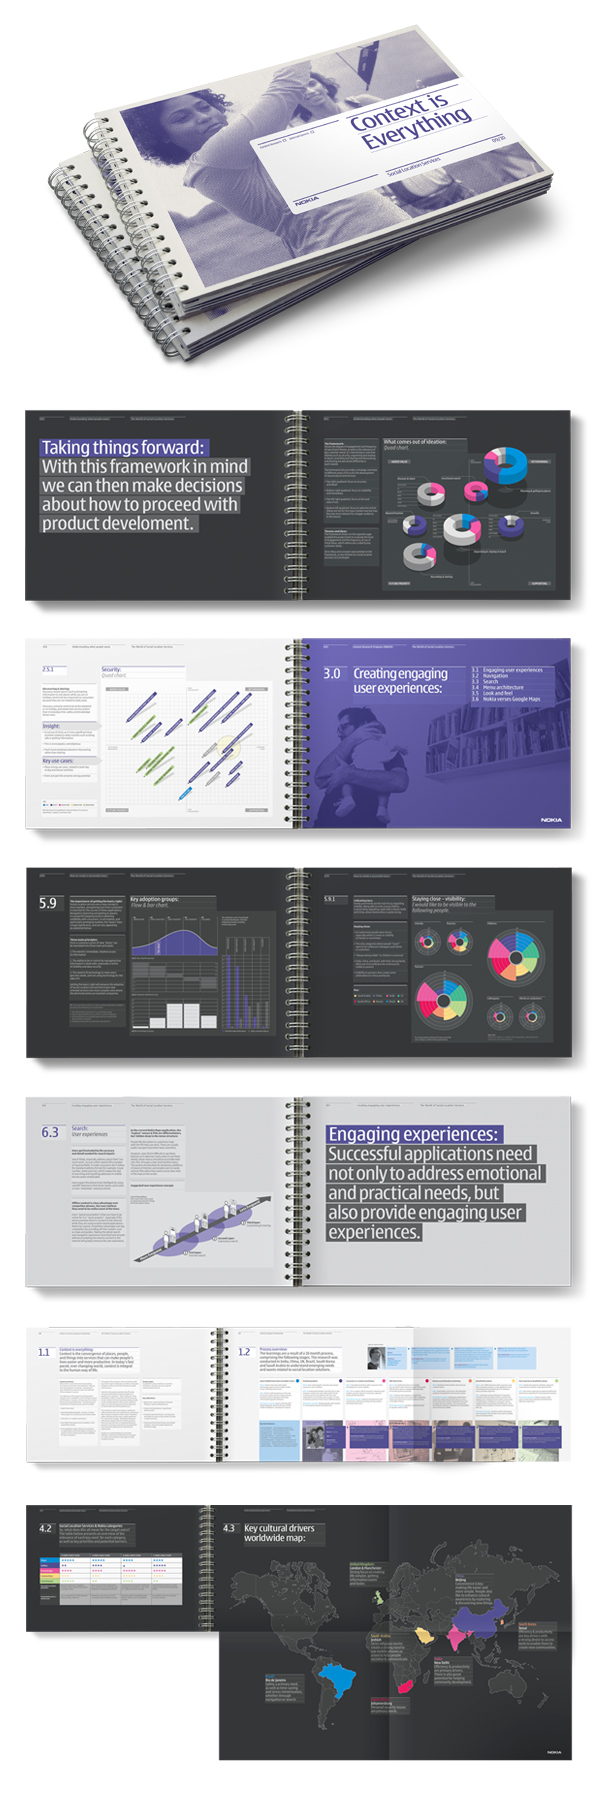 15581012677929491 25 Incredible Examples of Brochure and Catalog Design